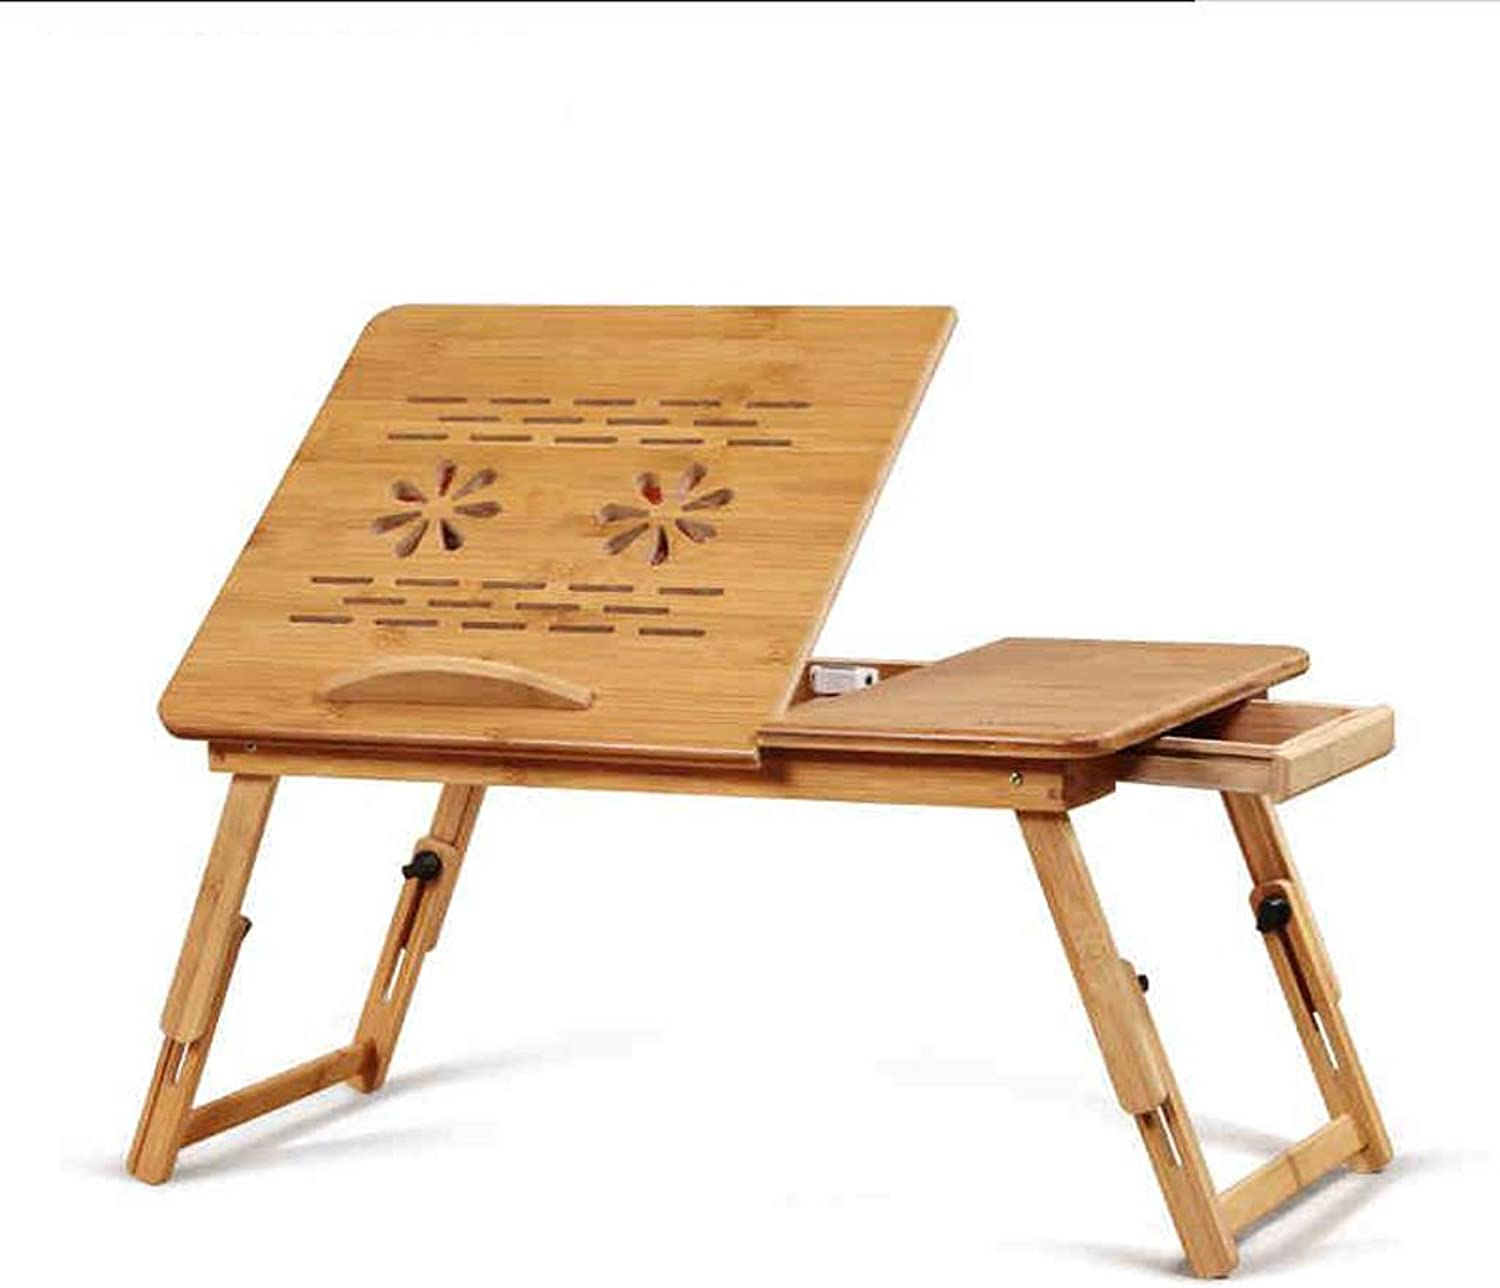 Djyyh Laptop Table, Foldable Lazy Table, Portable Small Dining Table, Dormitory Small Desk